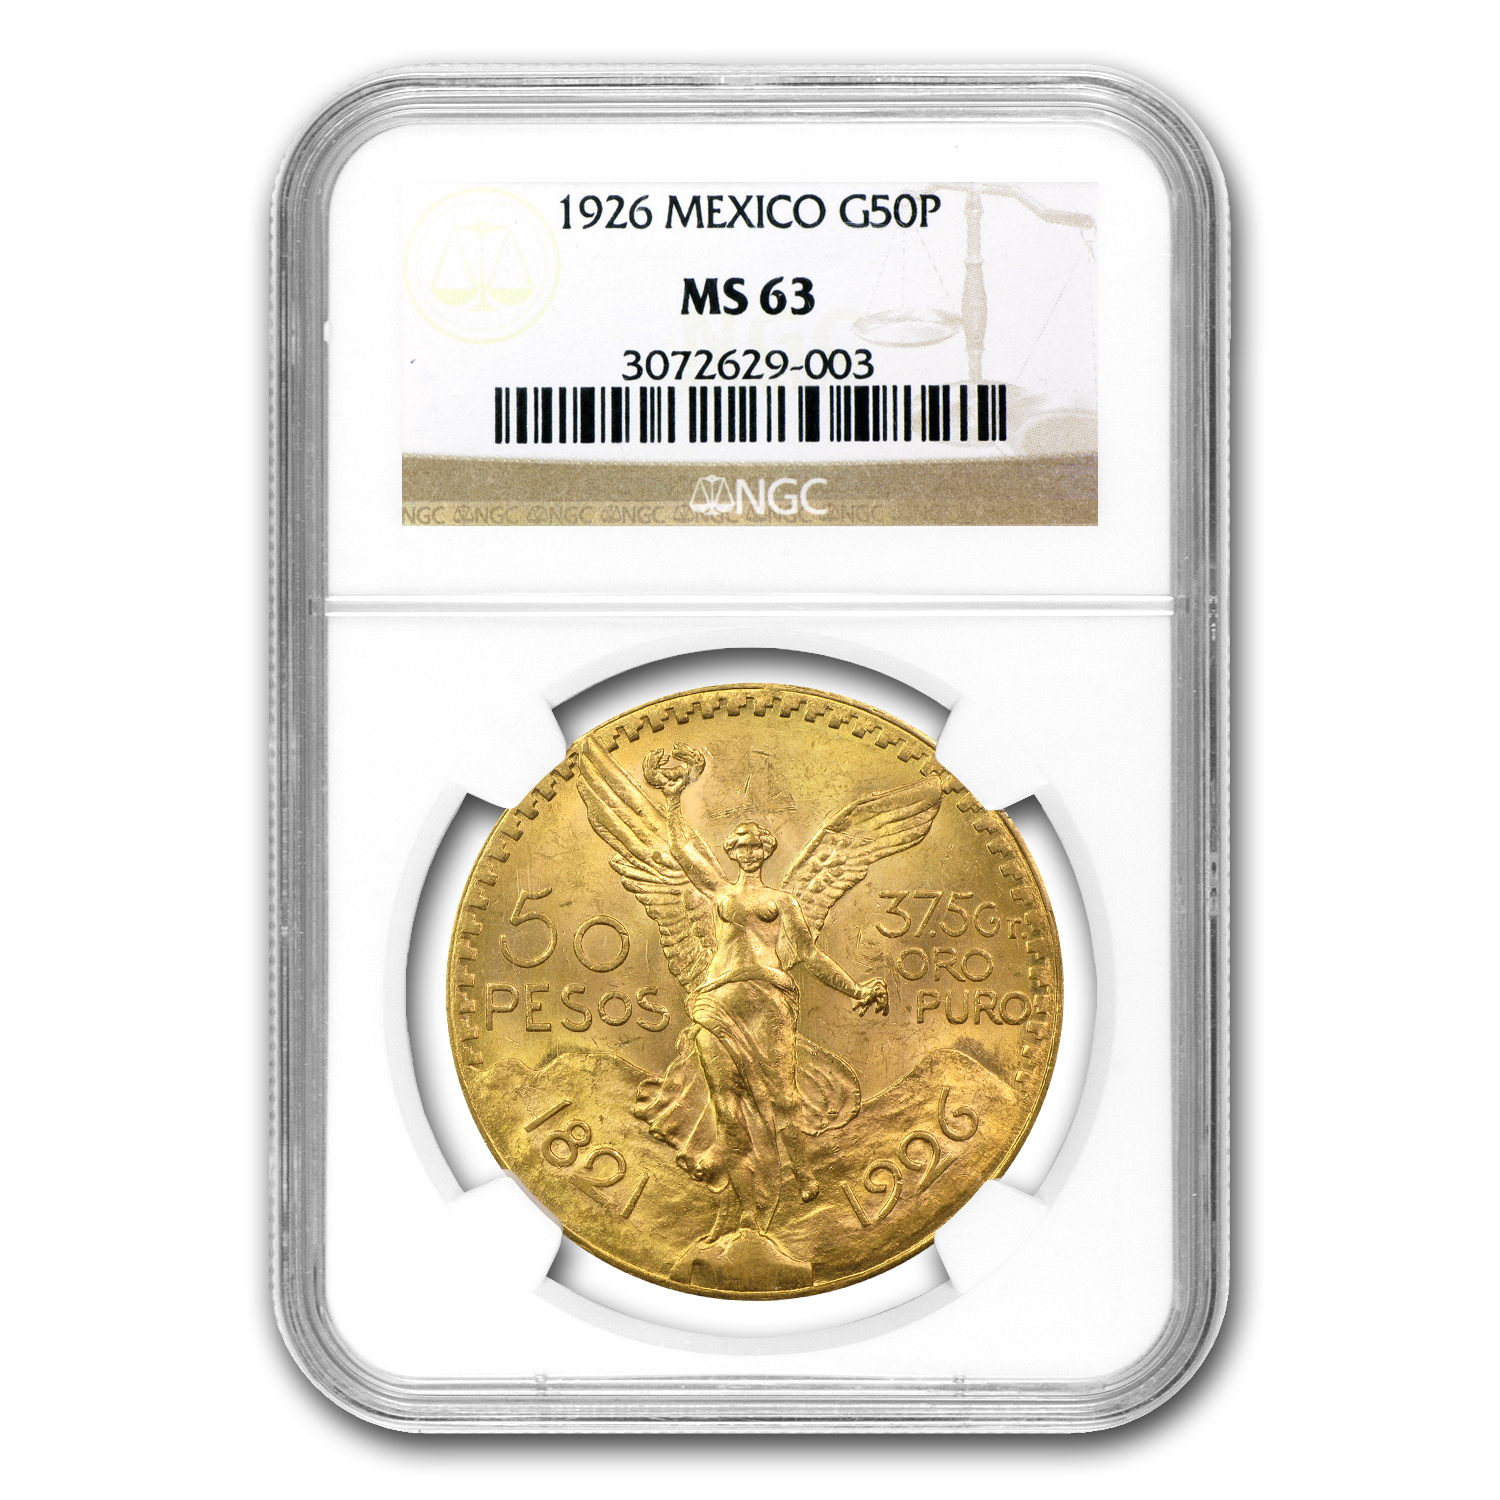 Mexico 1926 50 Pesos Gold Coin - MS-63 NGC